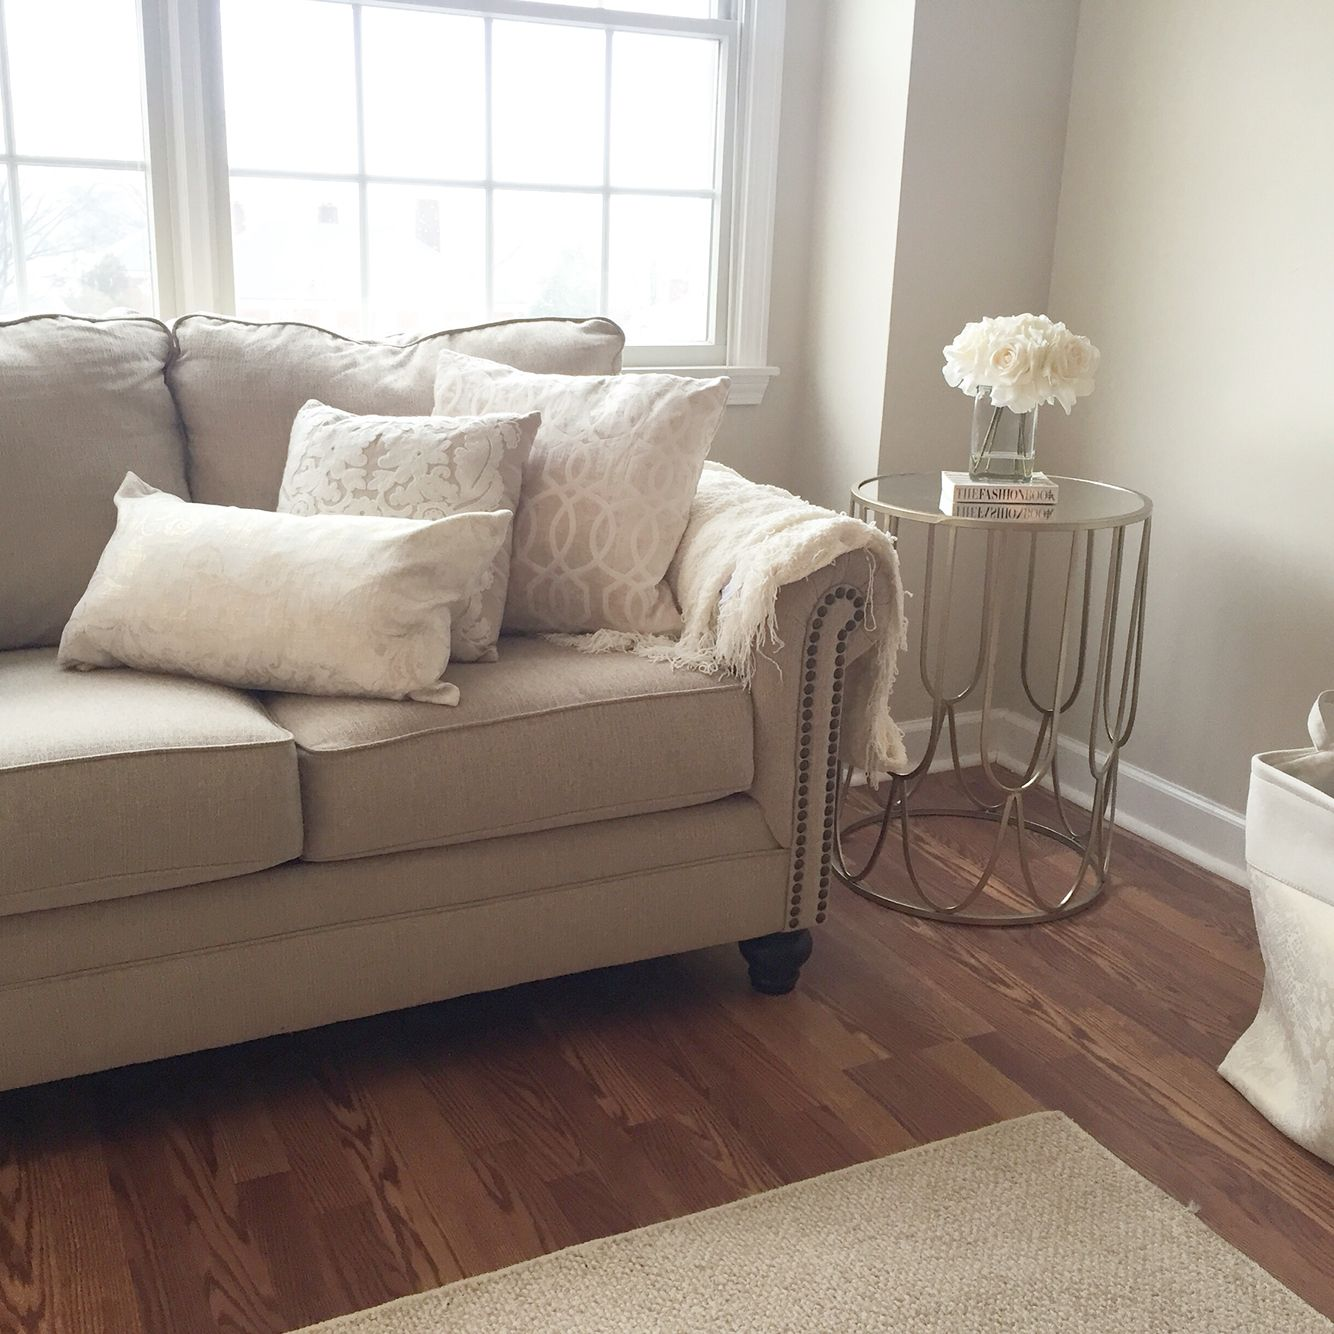 Living Room Decorating Ideas Tan Couch: Cozy Living Room. Warm Beige And Whites. Paint Color